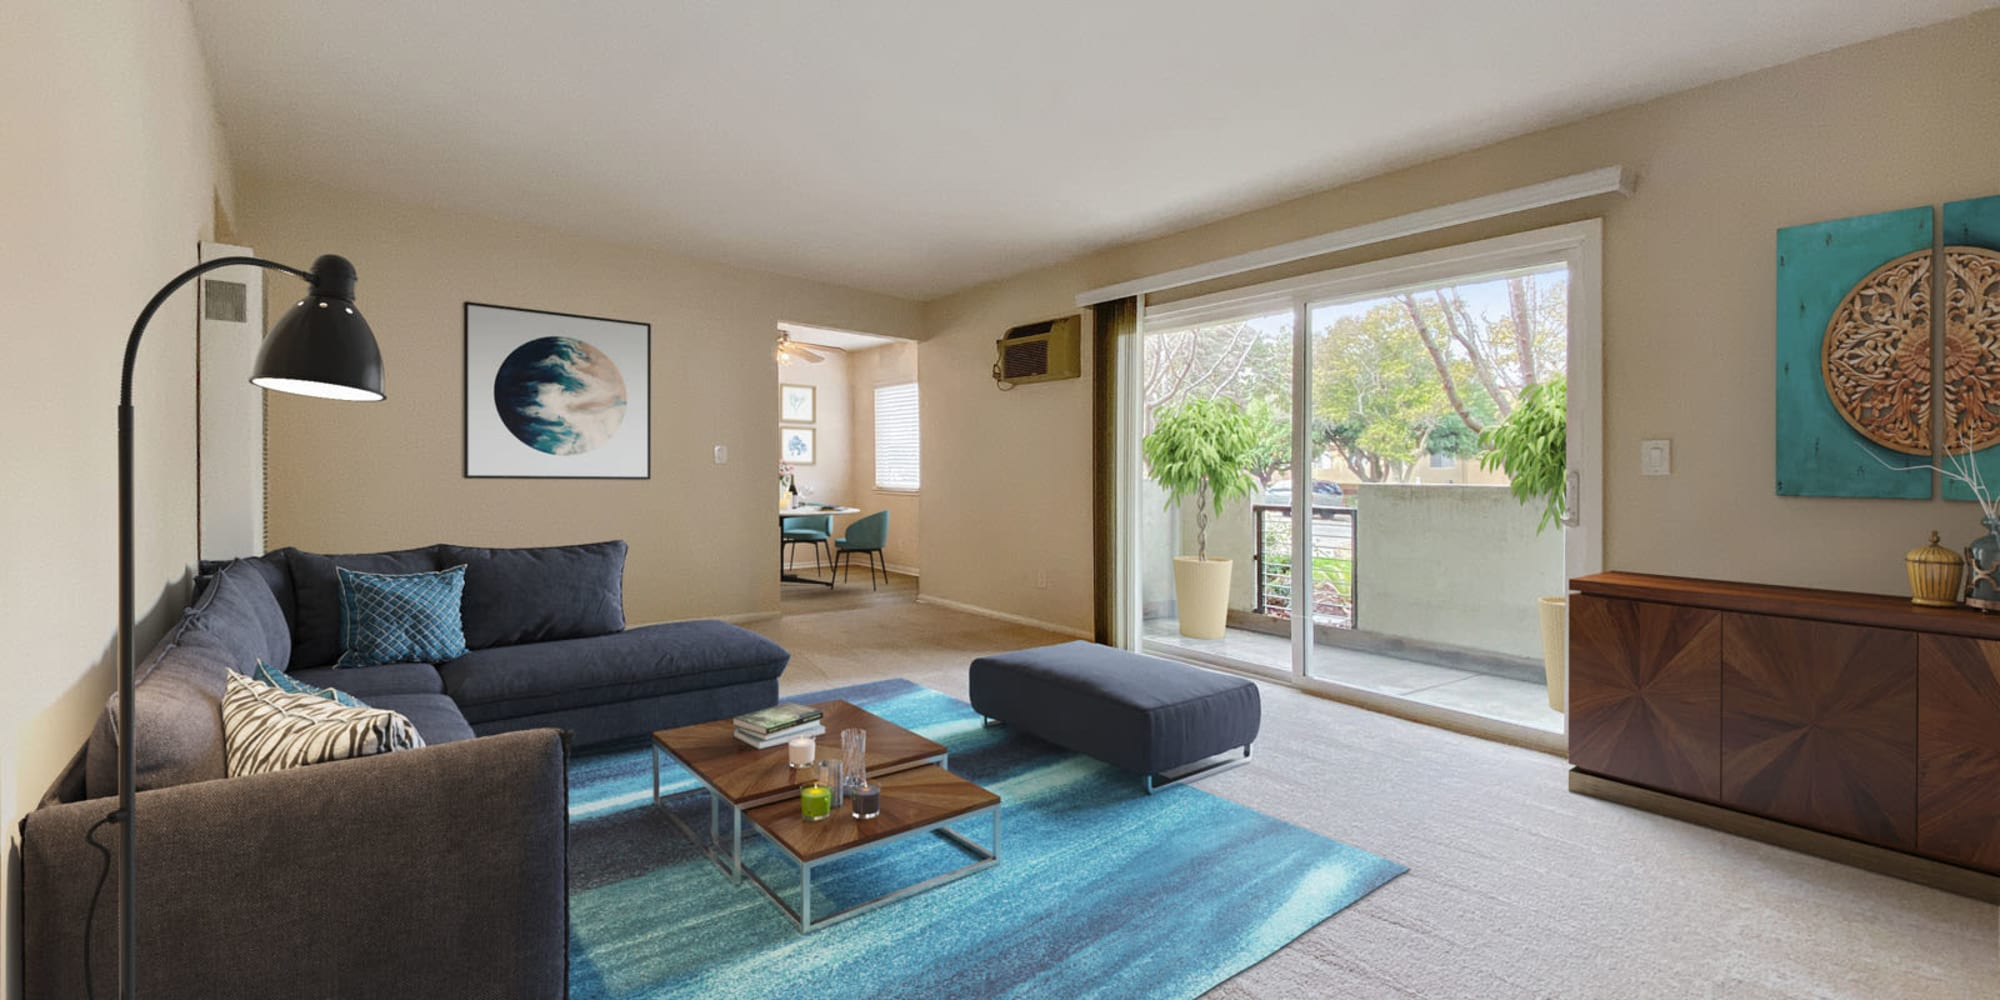 Comfortably furnished apartment home's living area with a view of the private balcony outside at Pleasanton Place Apartment Homes in Pleasanton, California